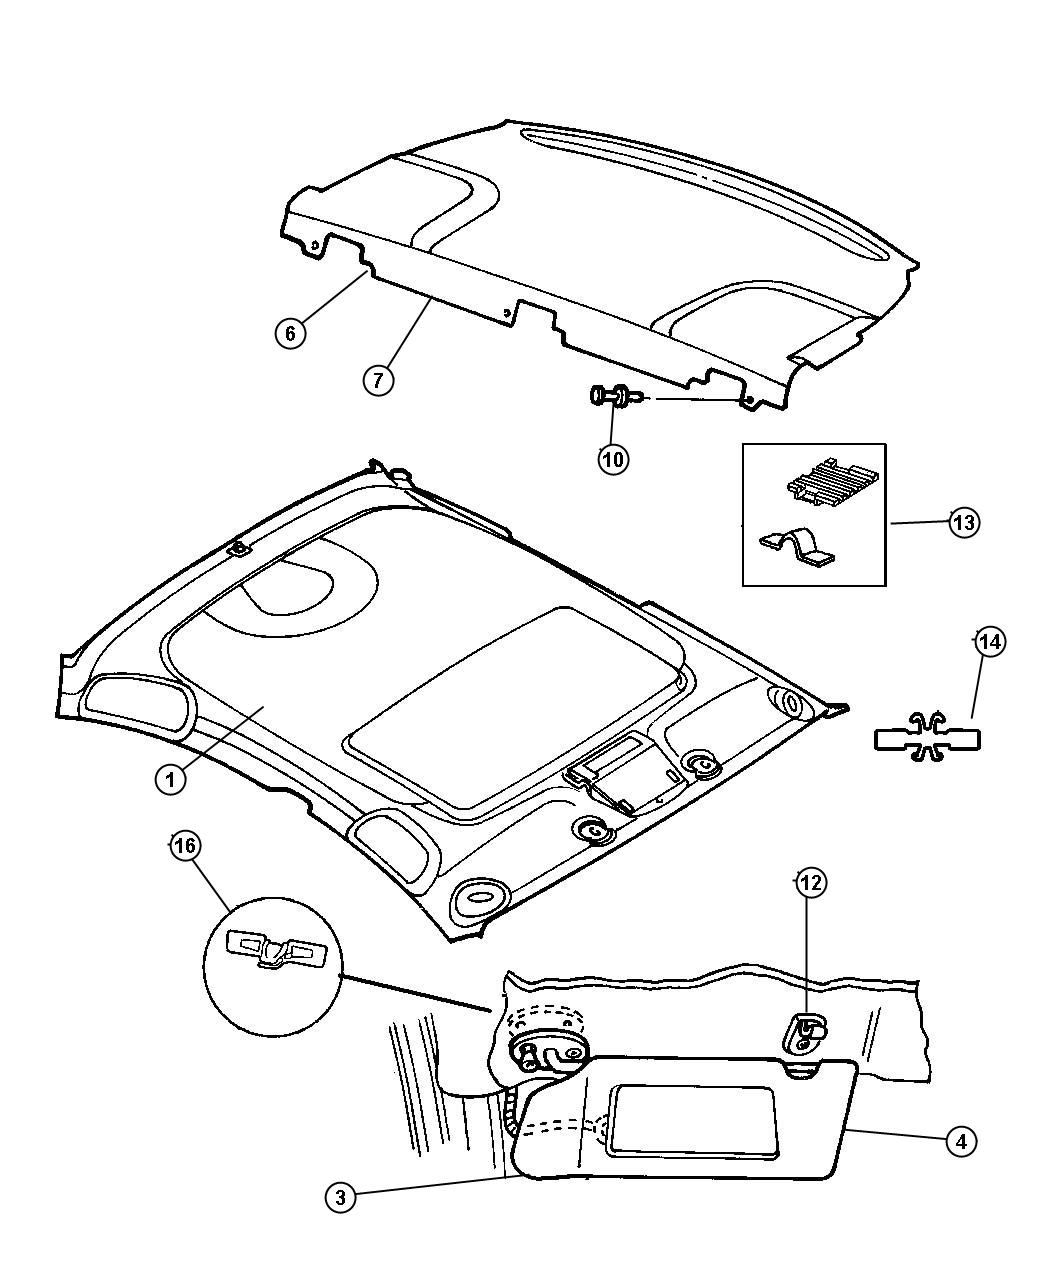 Service manual [1999 Dodge Intrepid Visor Installation